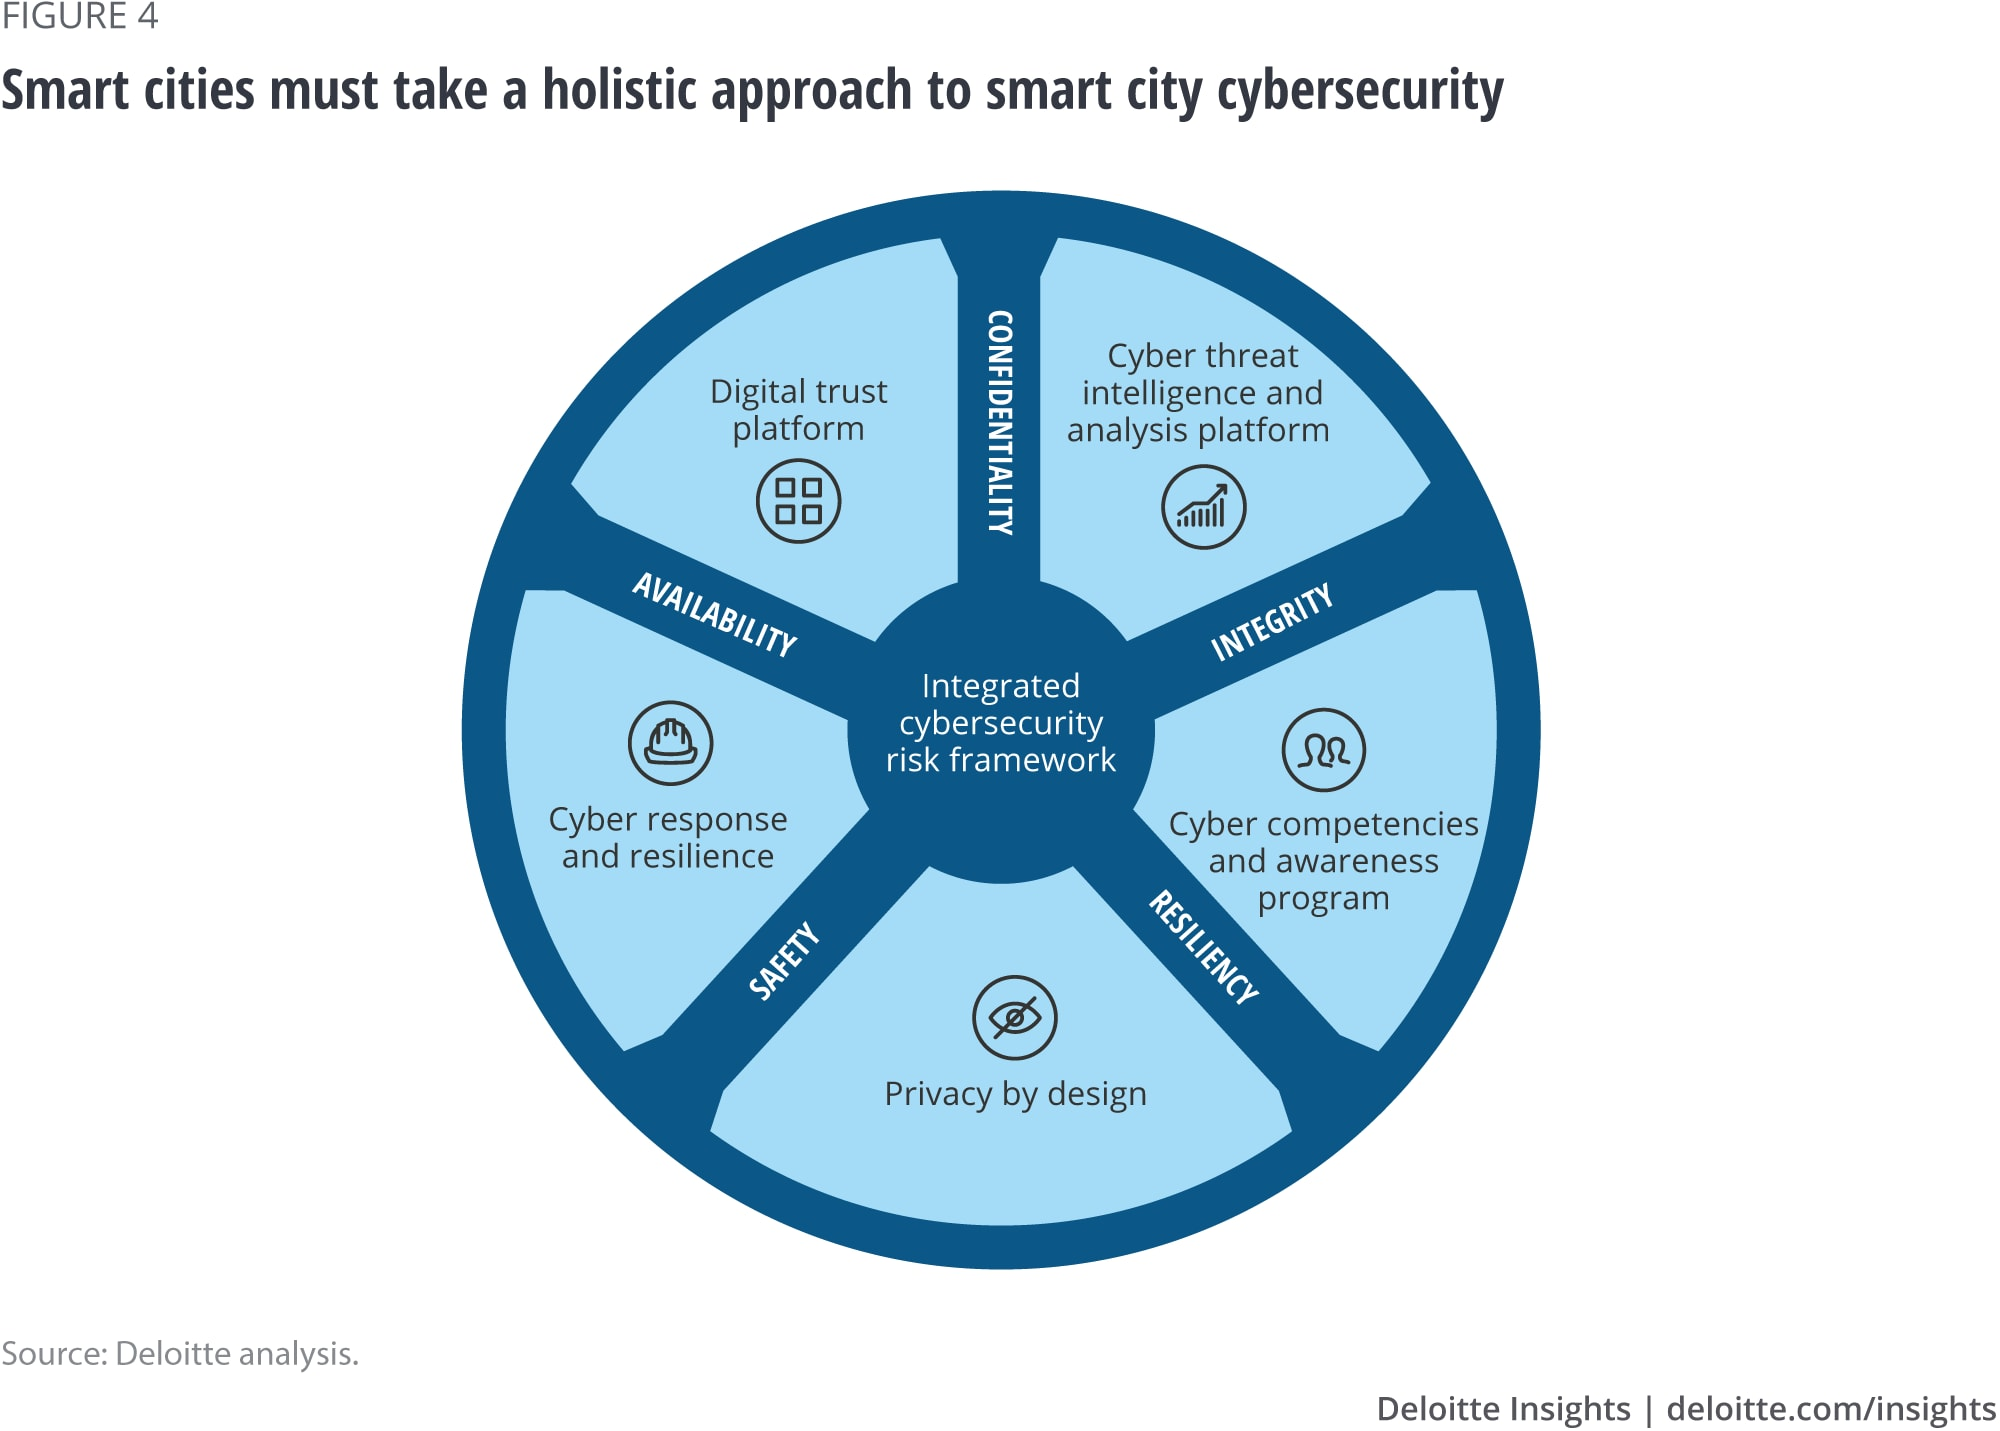 Smart cities must take a holistic approach to smart city cybersecurity